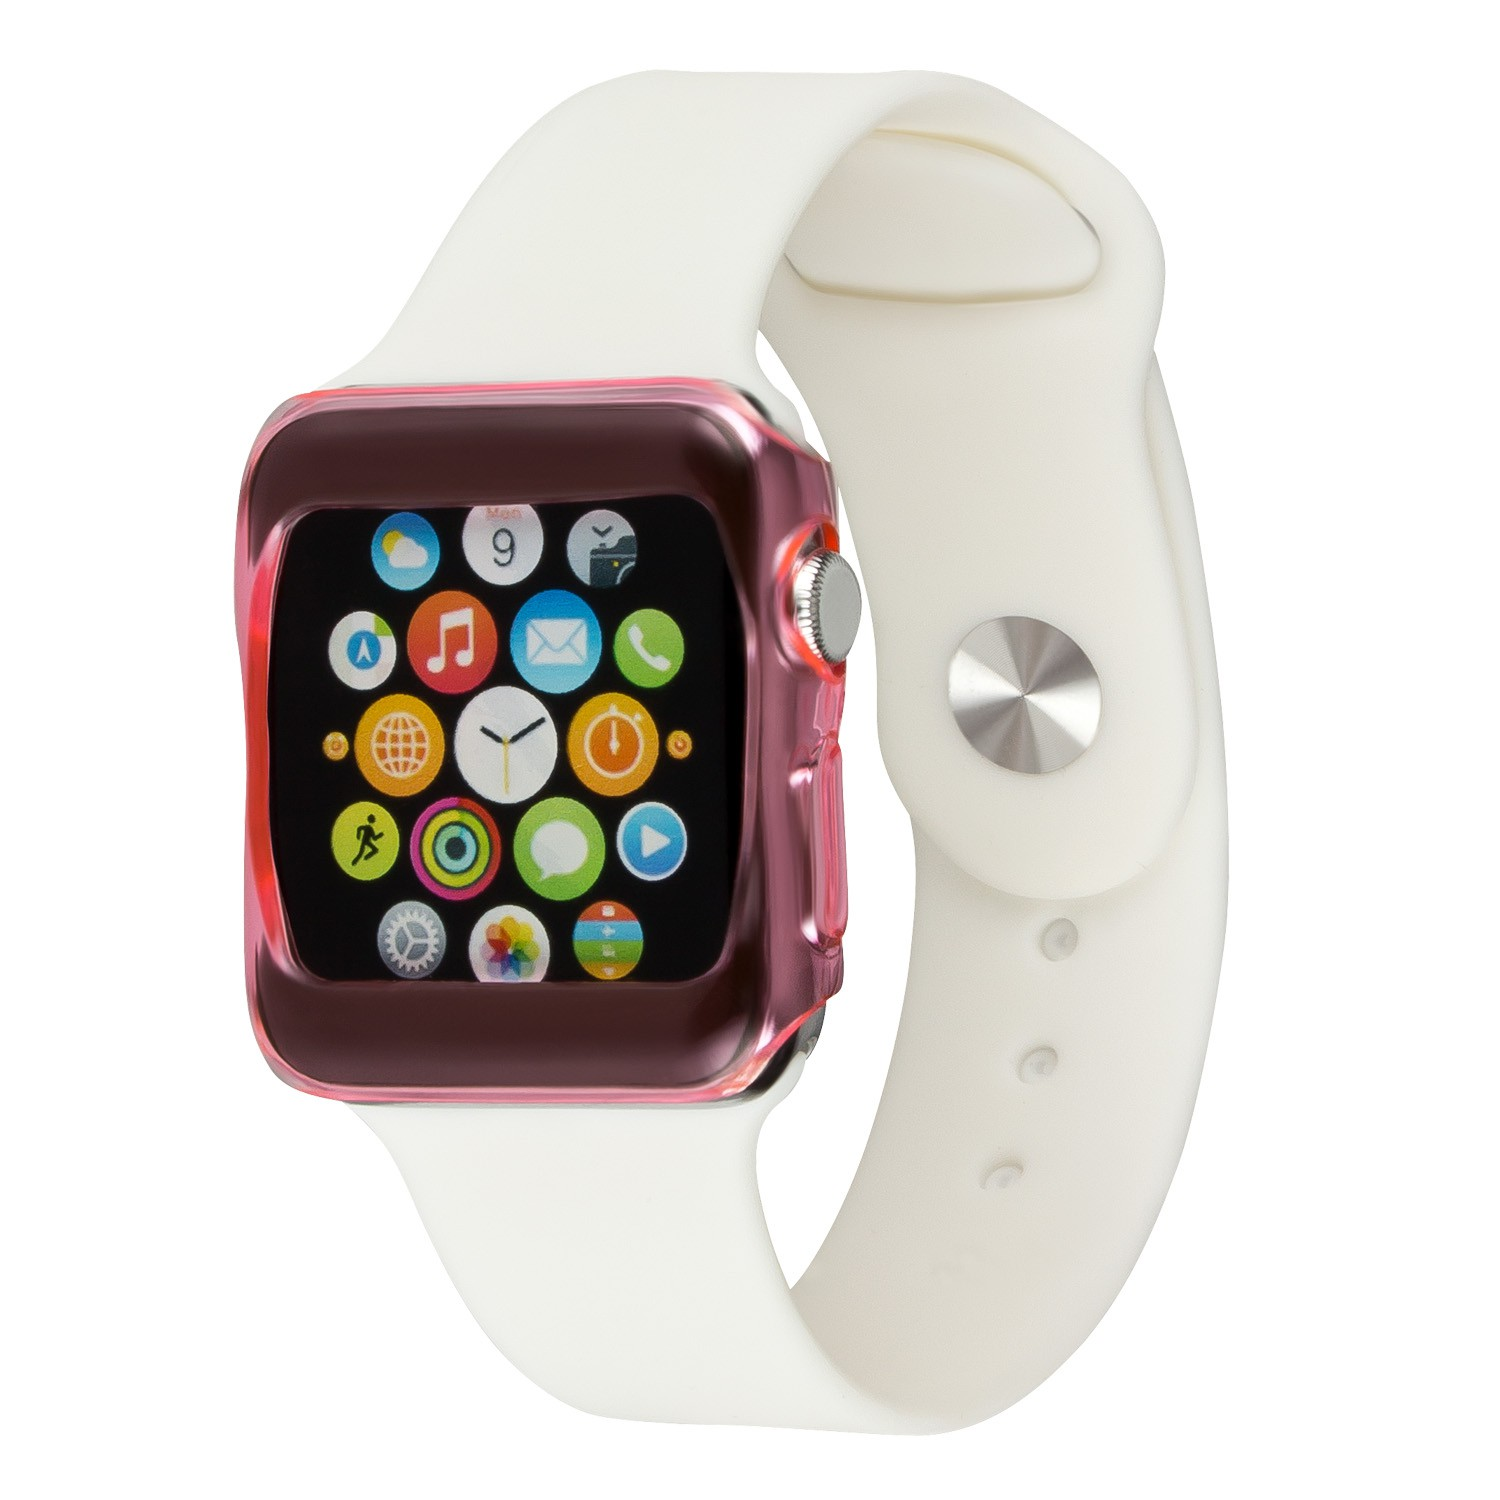 Yemota Pro Slimcase Apple Watch 42mm - Pink / Transparent